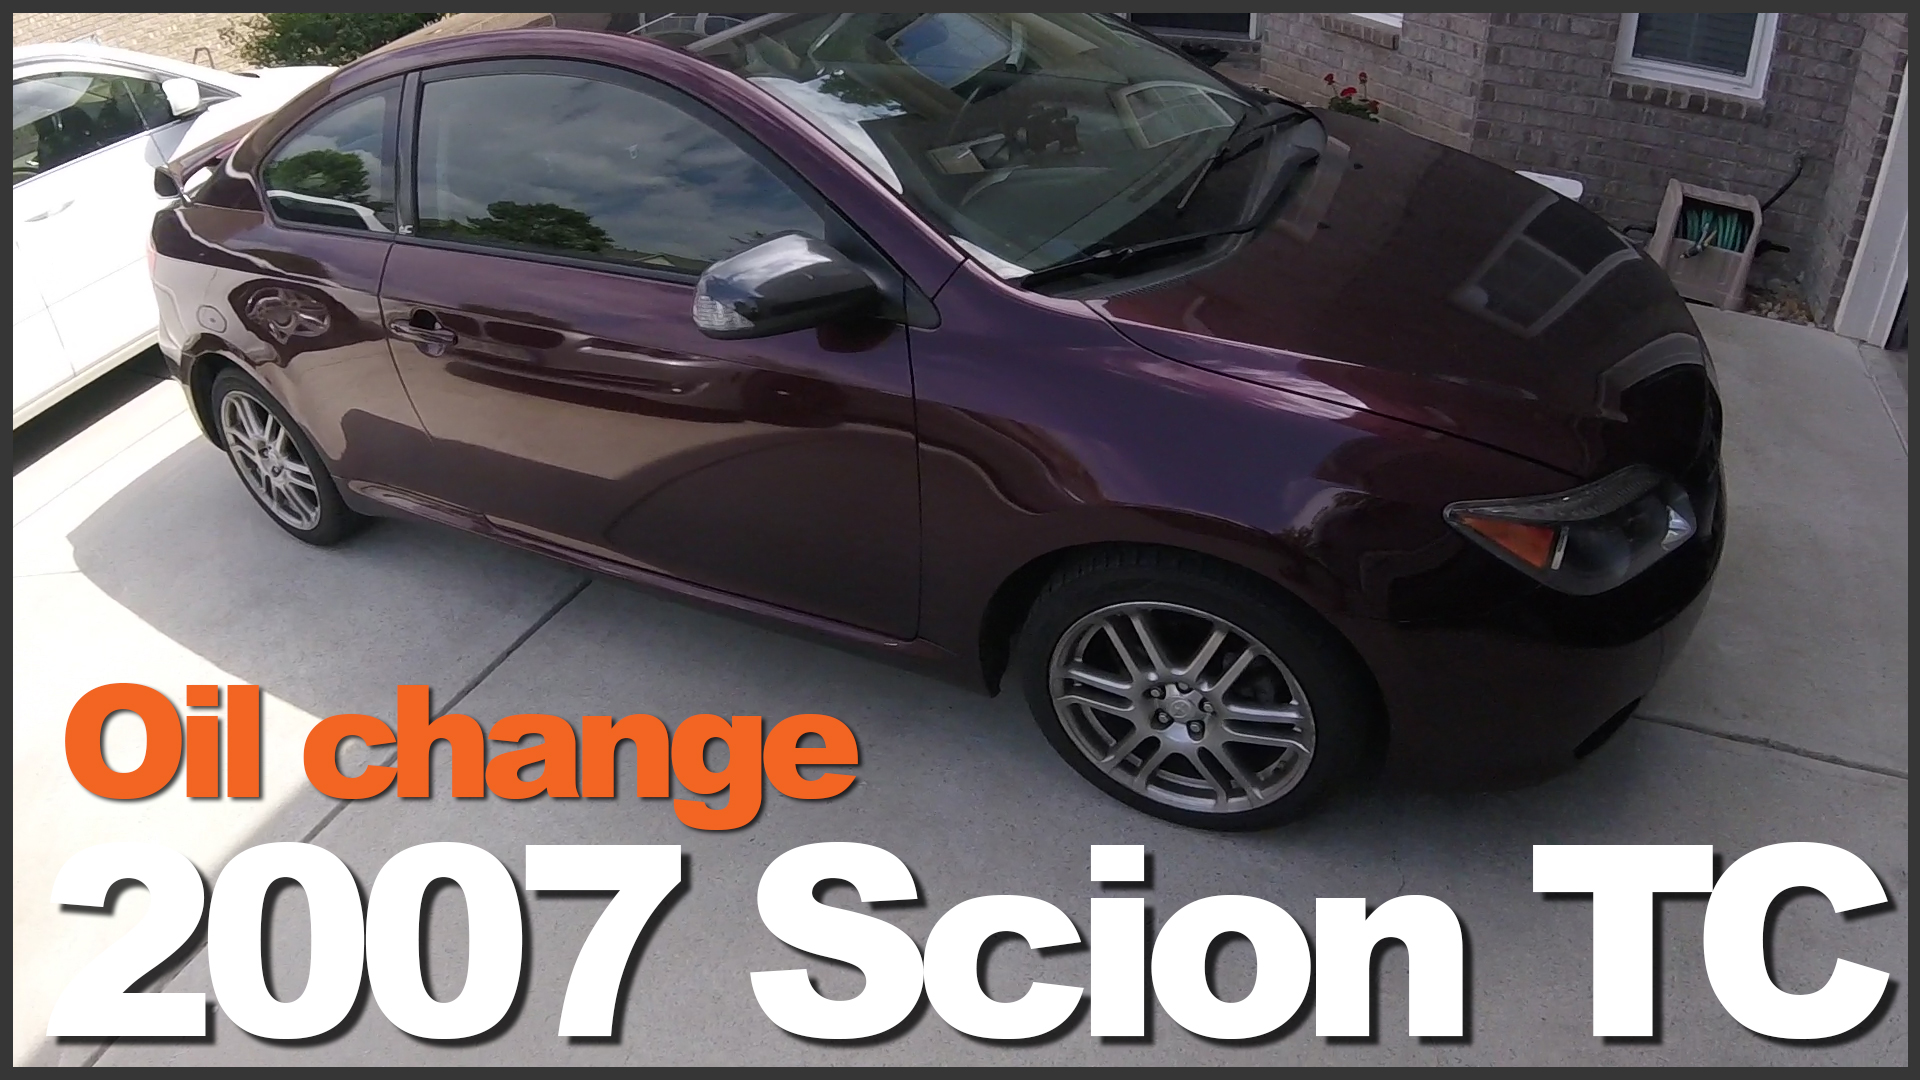 How to change oil 2007 scion tc 1geemae for 2007 scion tc motor oil